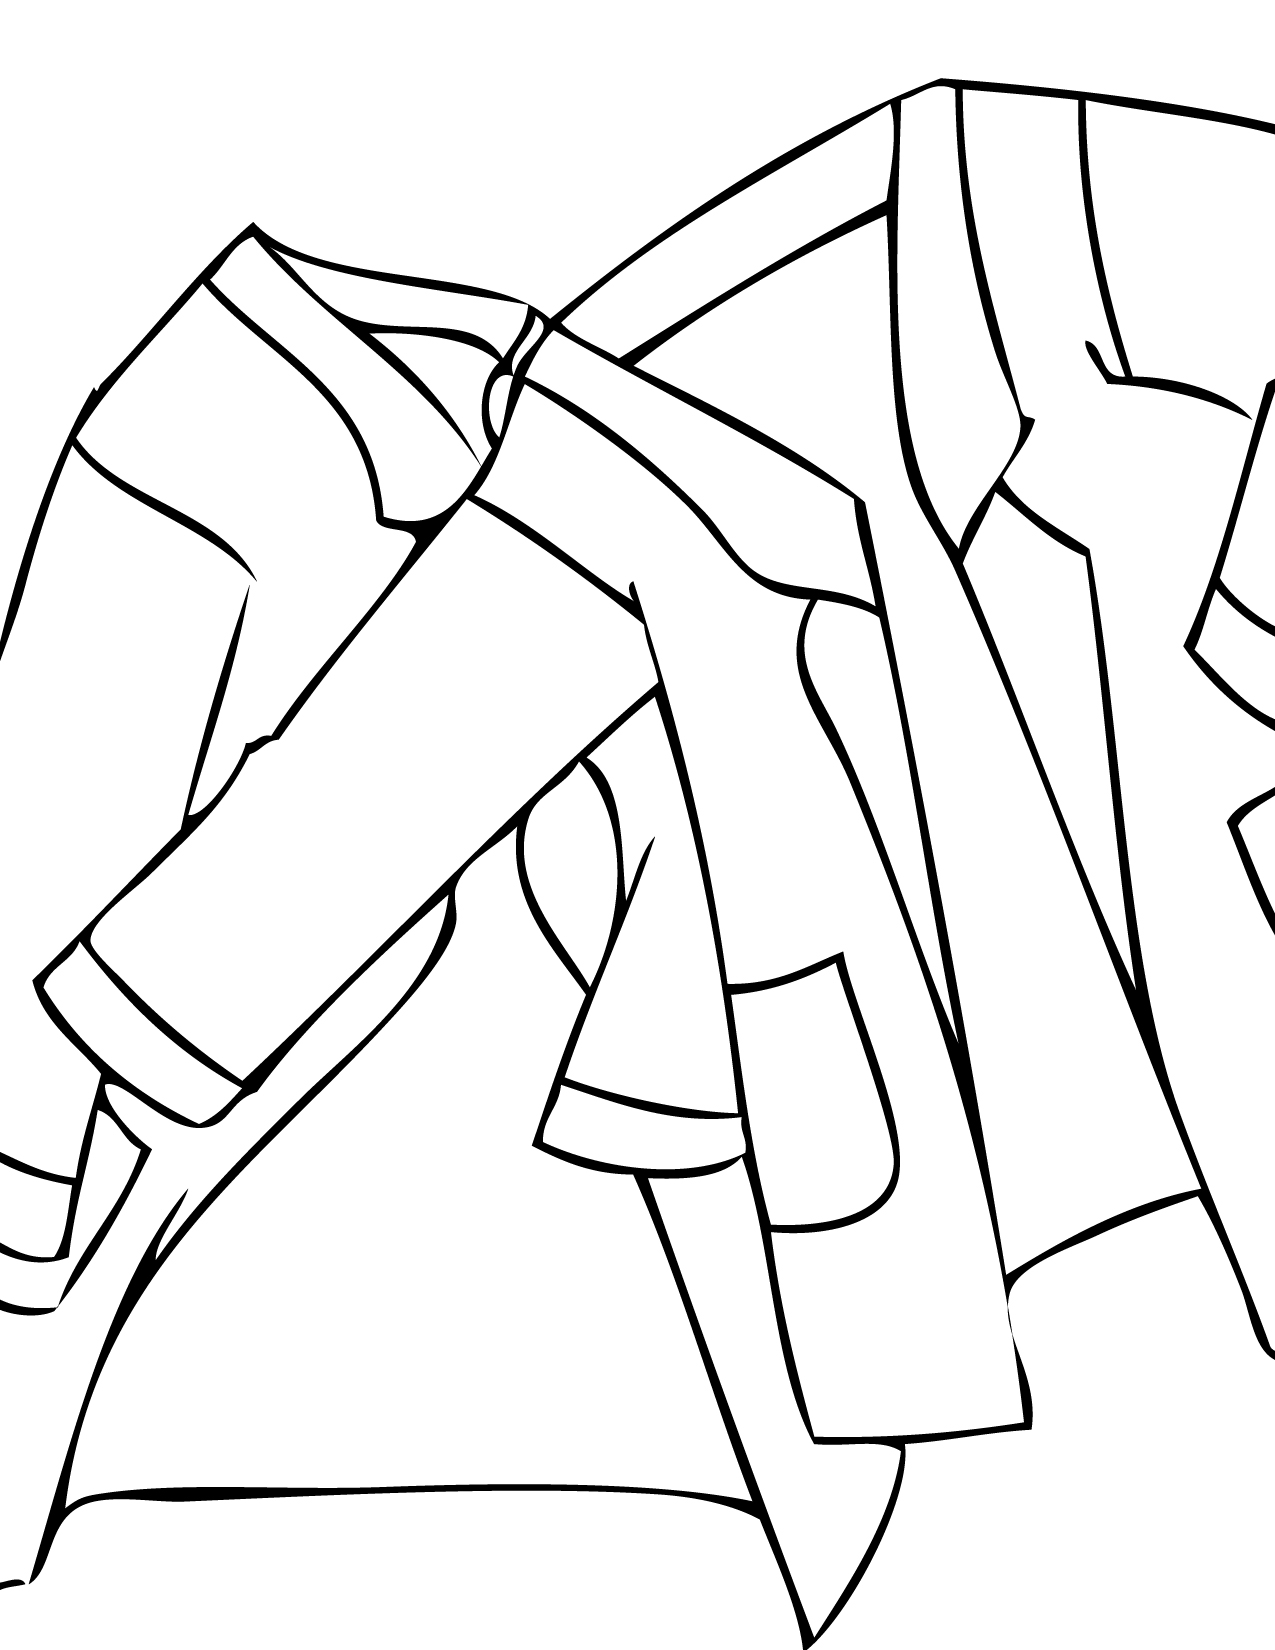 Microscope Coloring Page At Getdrawings